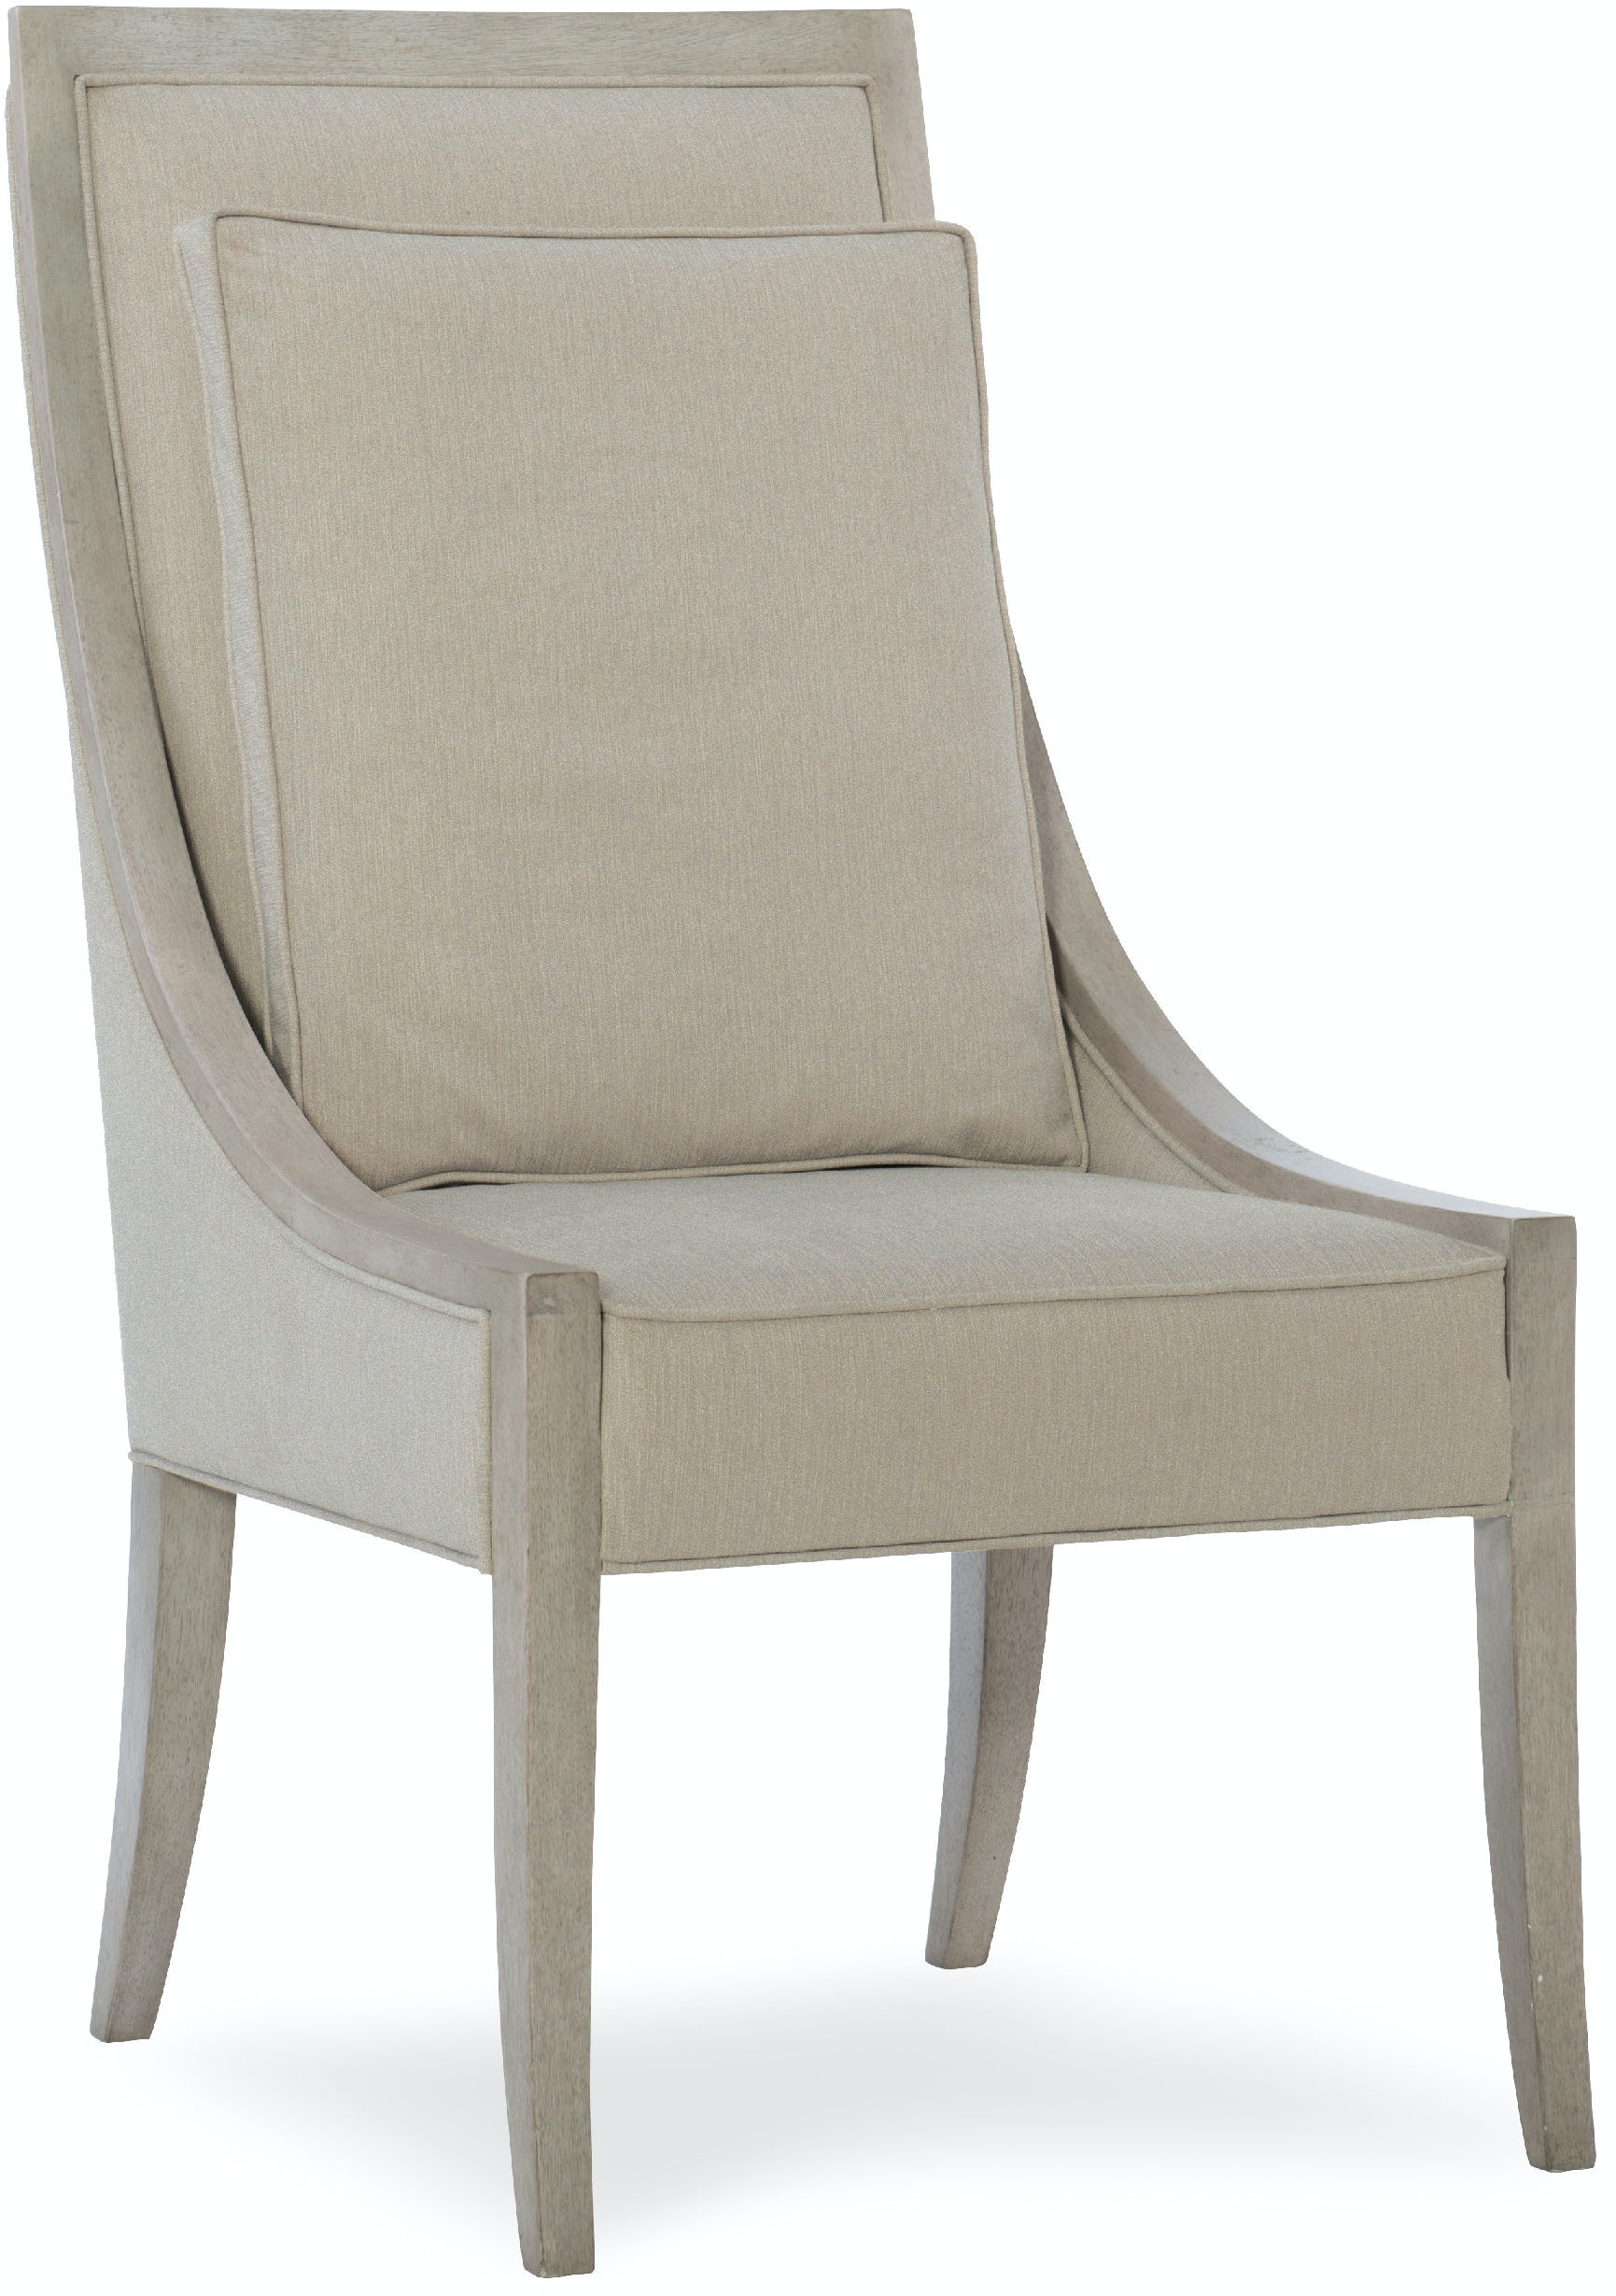 Hooker Furniture Dining Room Elixir Host Chair 5990-75500-LTWD